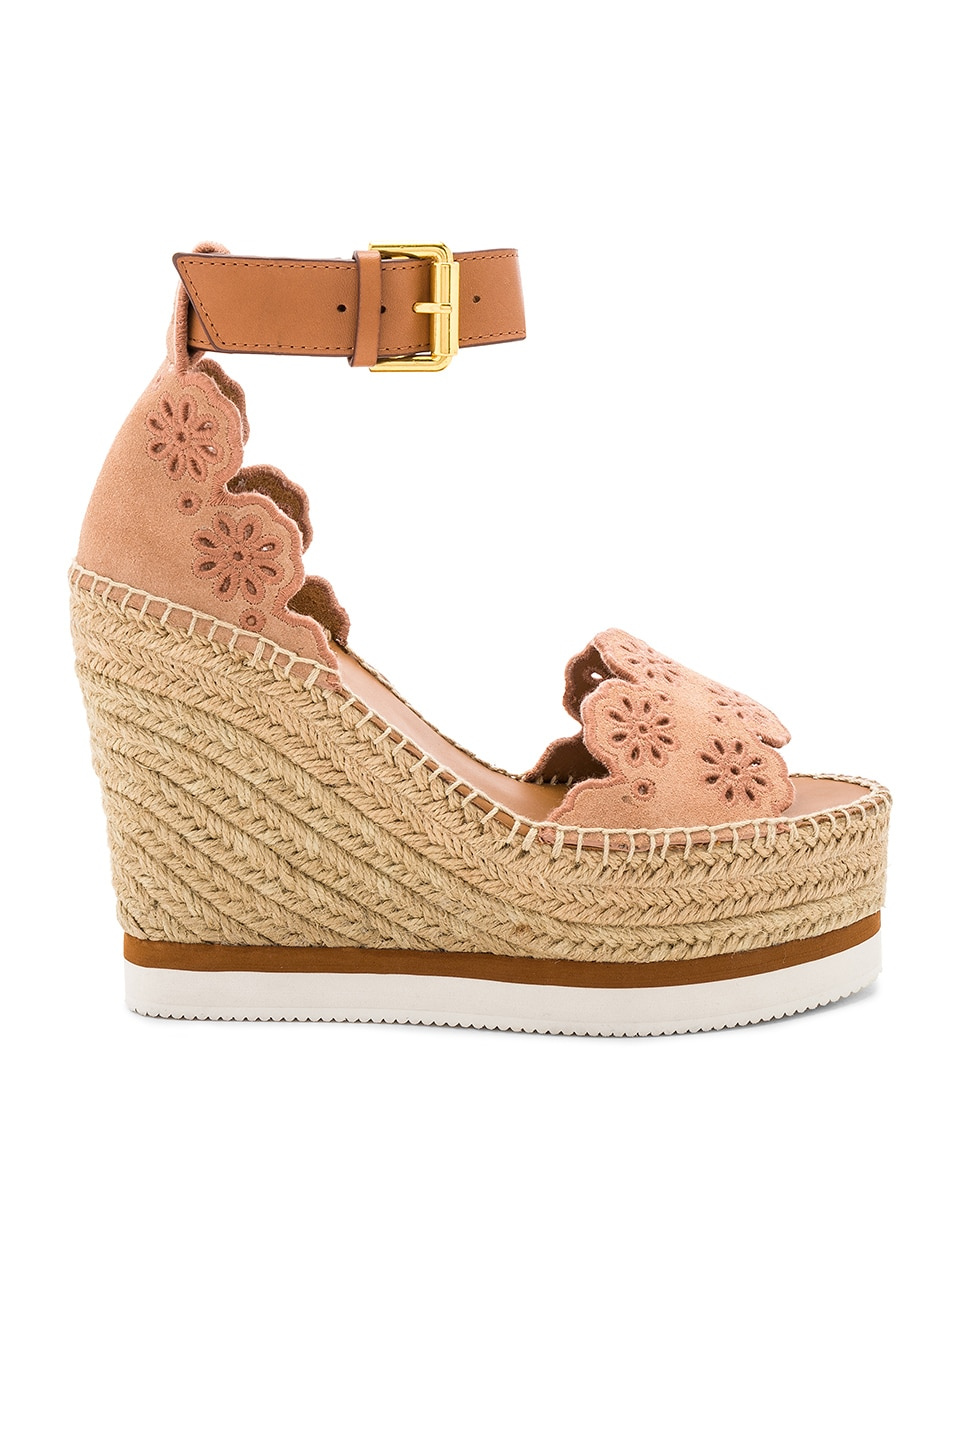 d06ec621bd3 See By Chloe Glyn Wedge Sandal in Cipria & Natural Calf | REVOLVE